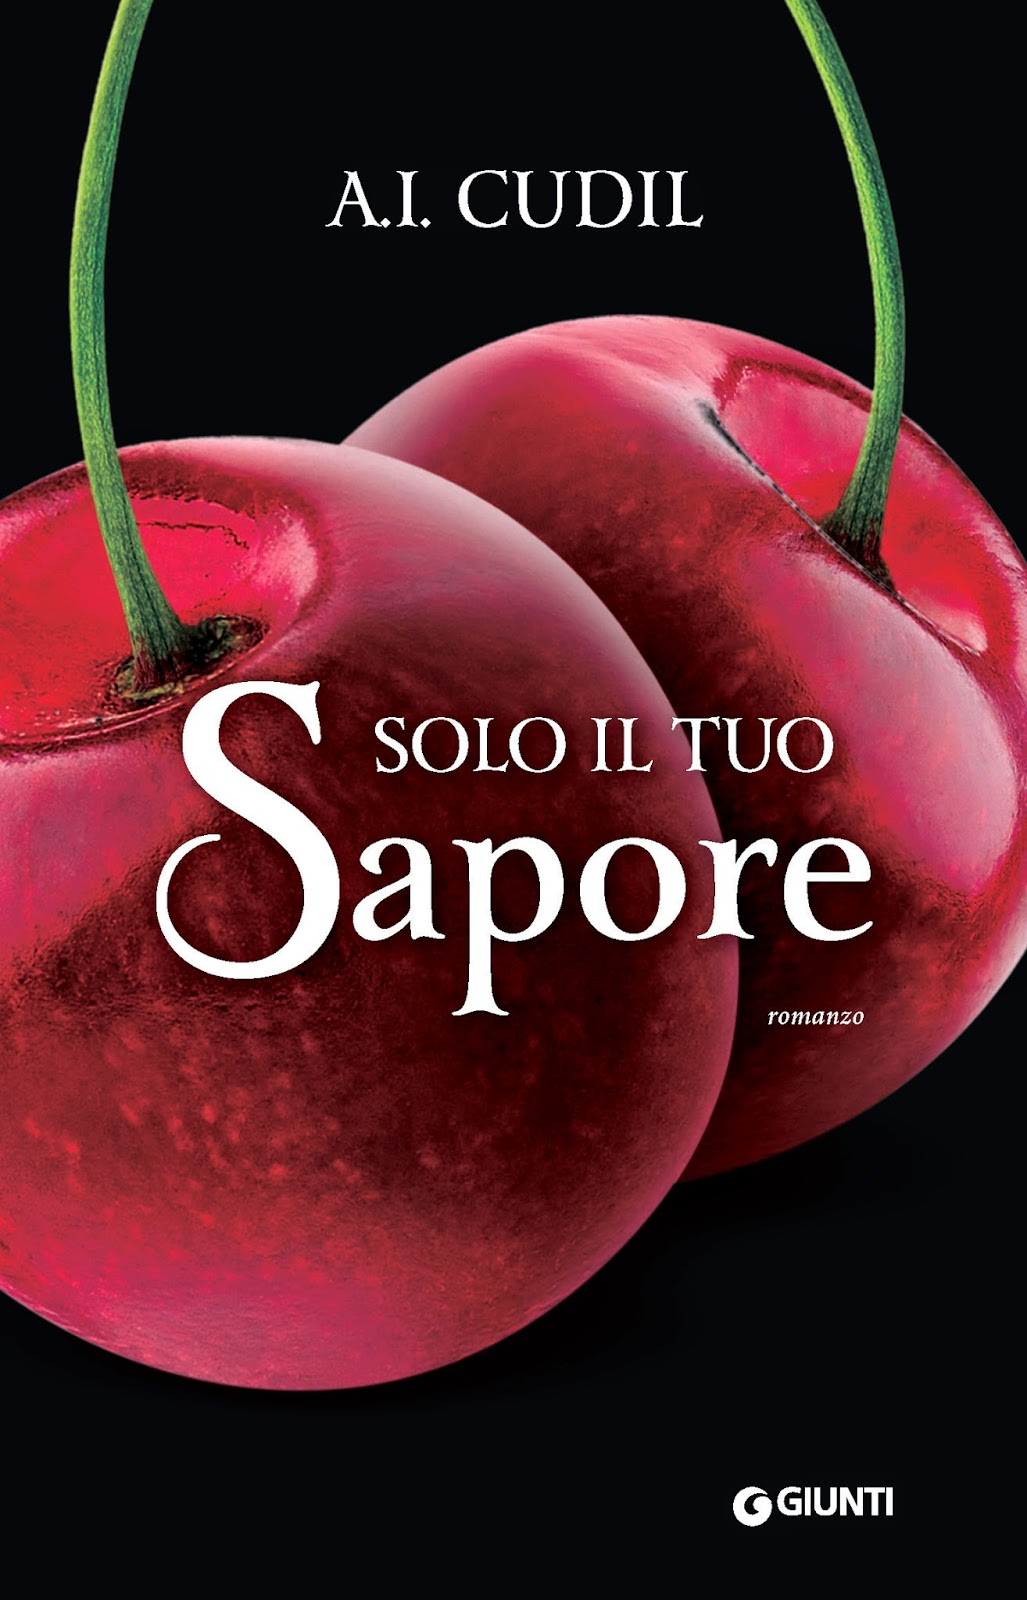 http://www.amazon.it/Solo-tuo-sapore-I-Cudil-ebook/dp/B00NT8YRWW/